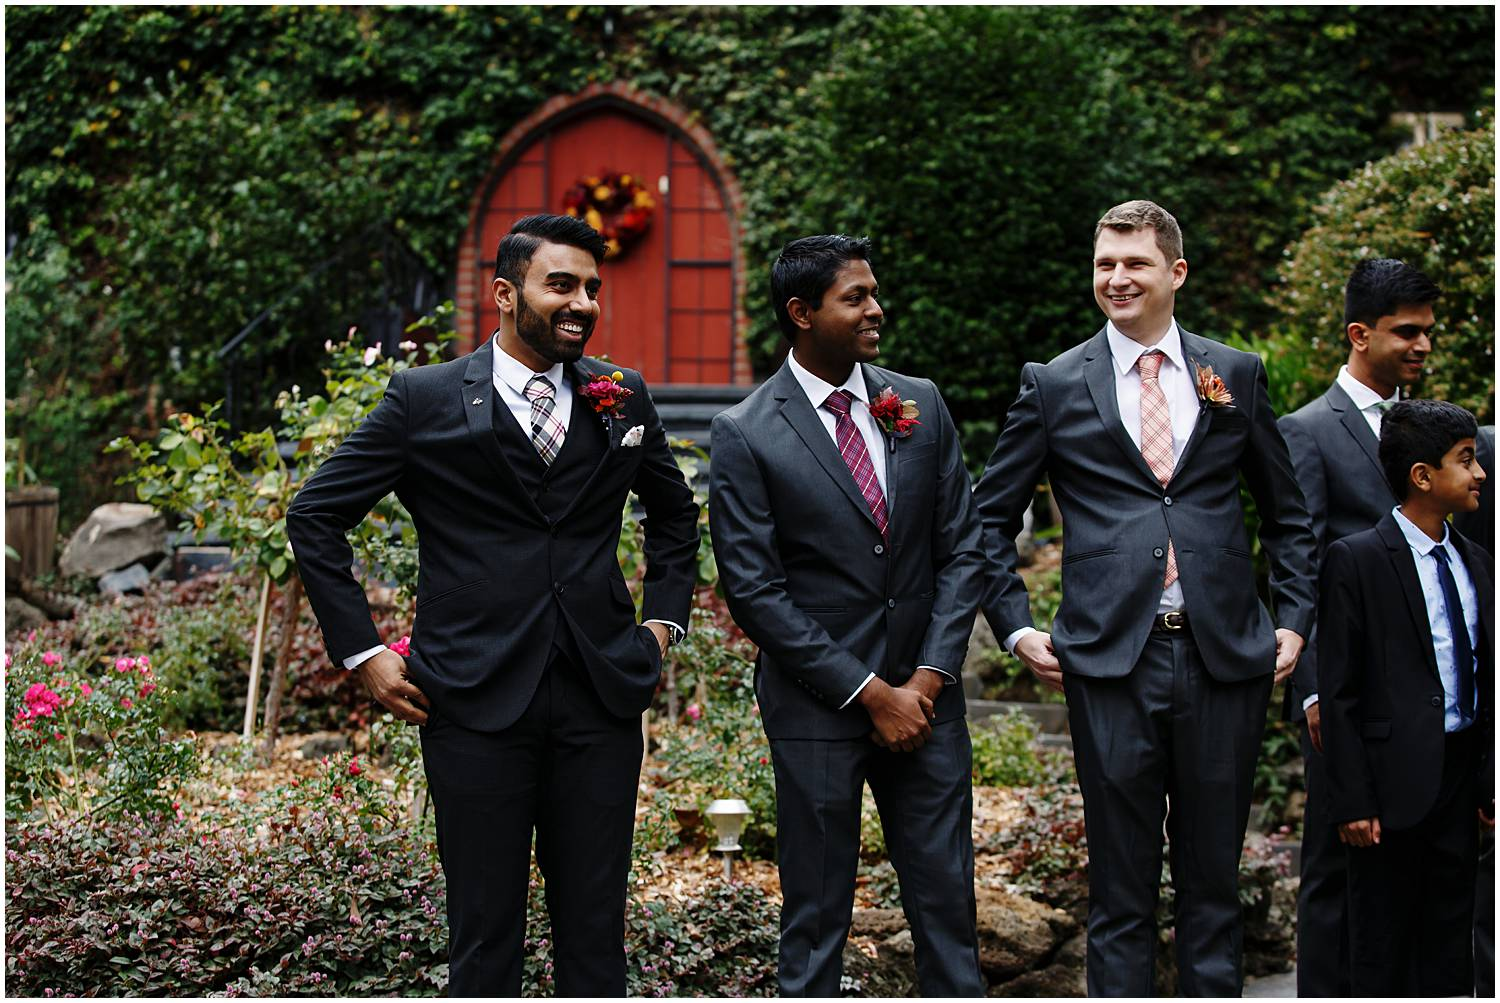 colourful autumn wedding melbourne020.jpg